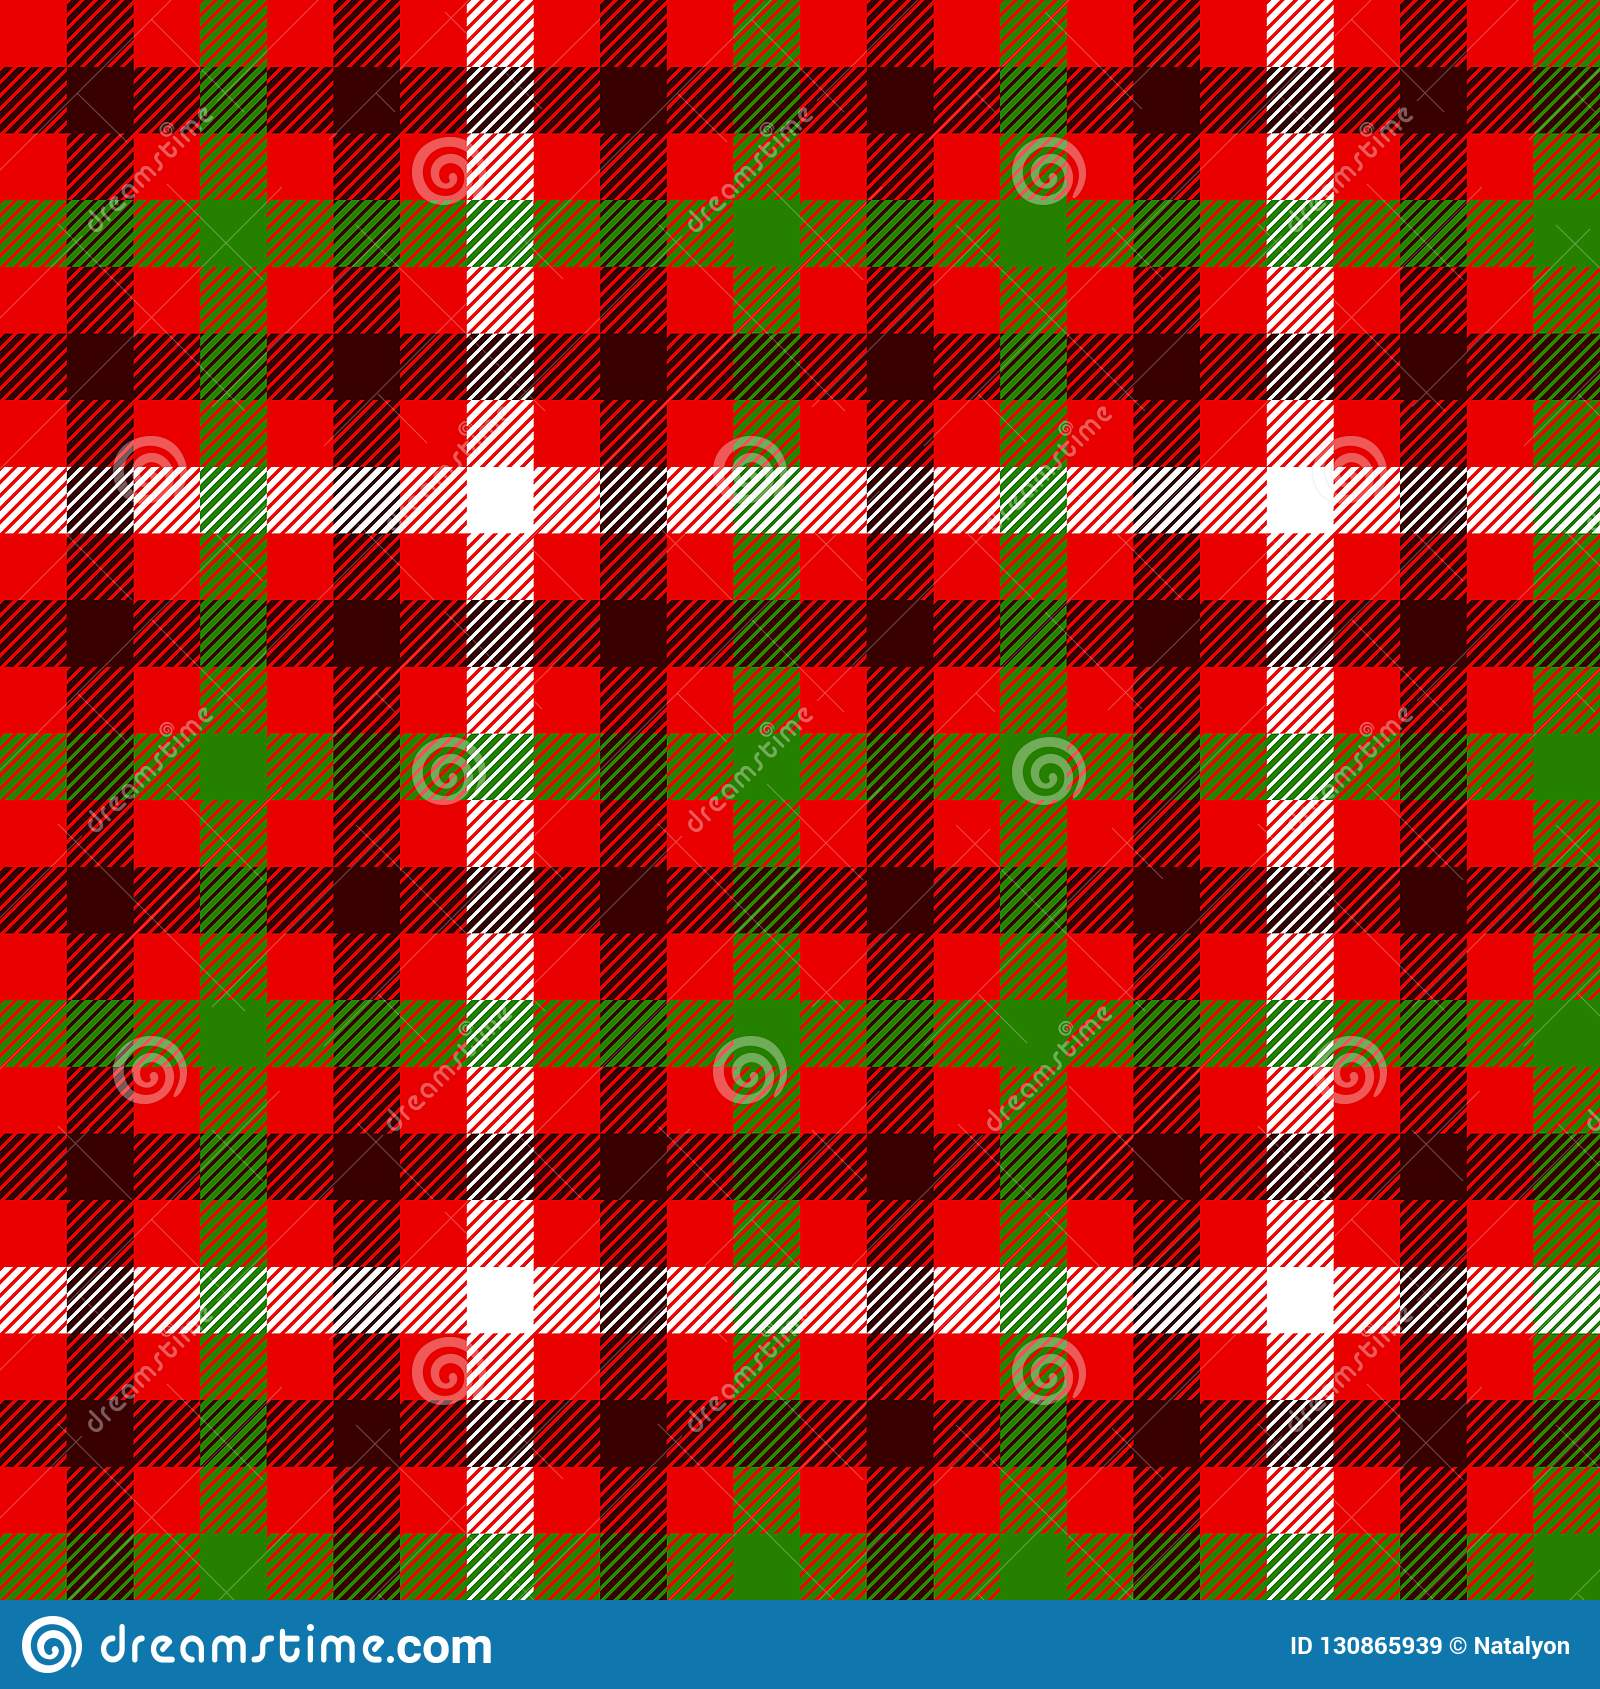 Red green and black tartan traditional fabric seamless pattern, vector